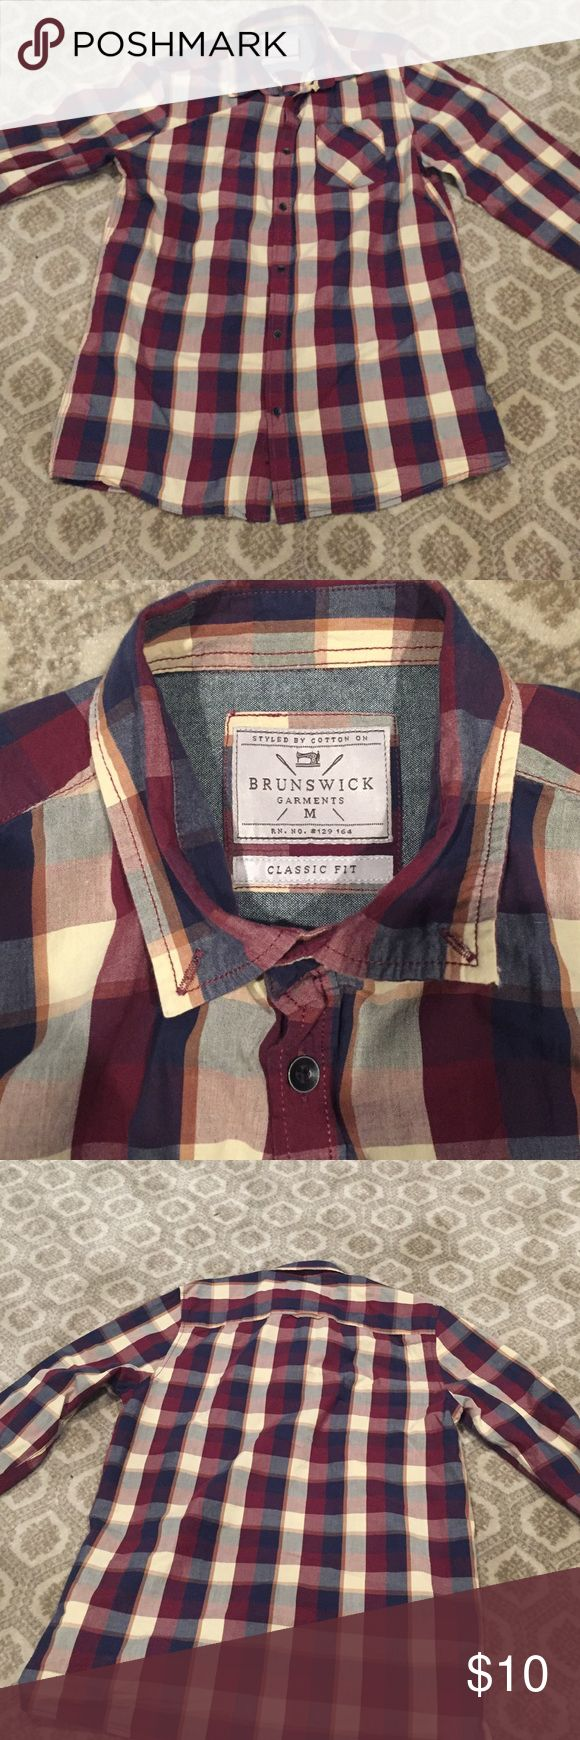 Flannel shirt It's a red cream and blue flannel shirt.  It is thin material and very breathable.  Amazing look for the summer! Cotton On Shirts Casual Button Down Shirts